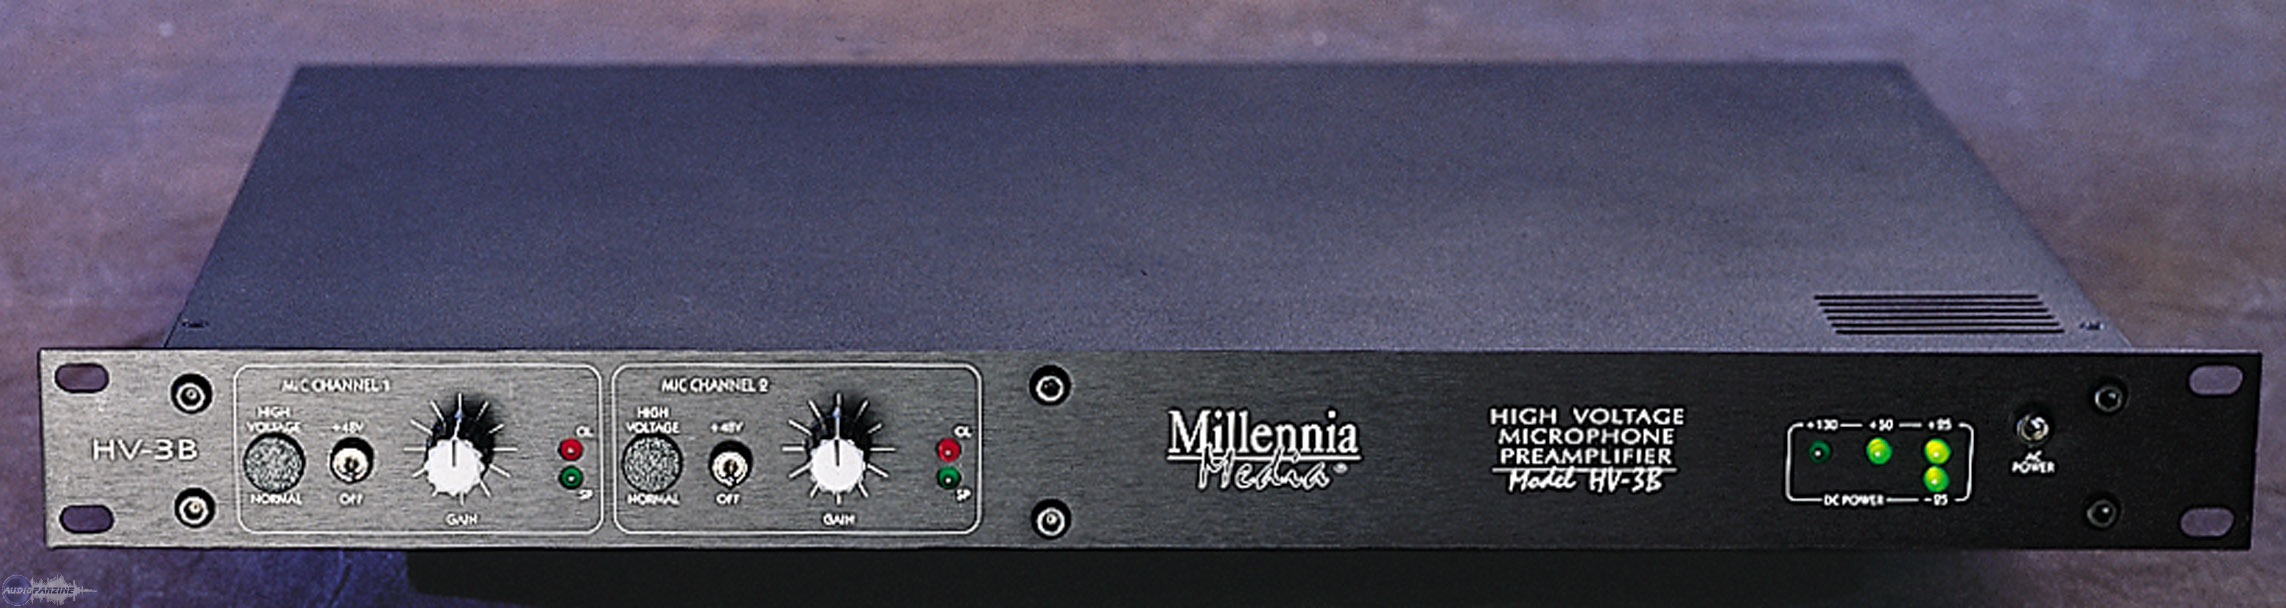 Millennia  HV-3B hardware analog outboard pre mix master audiofader